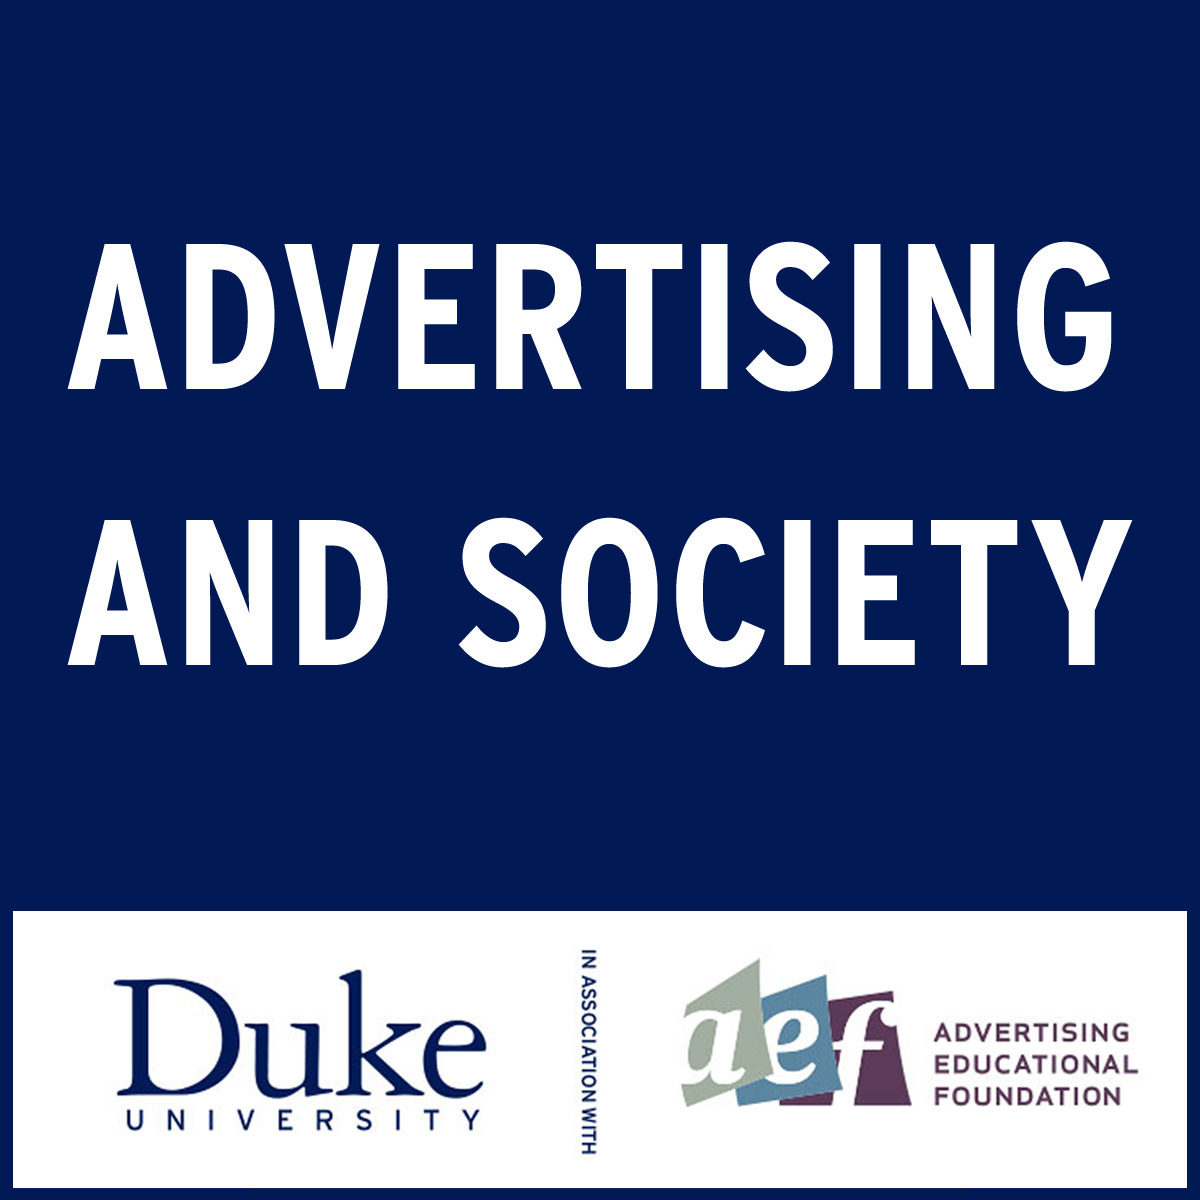 Advertising and Society course image